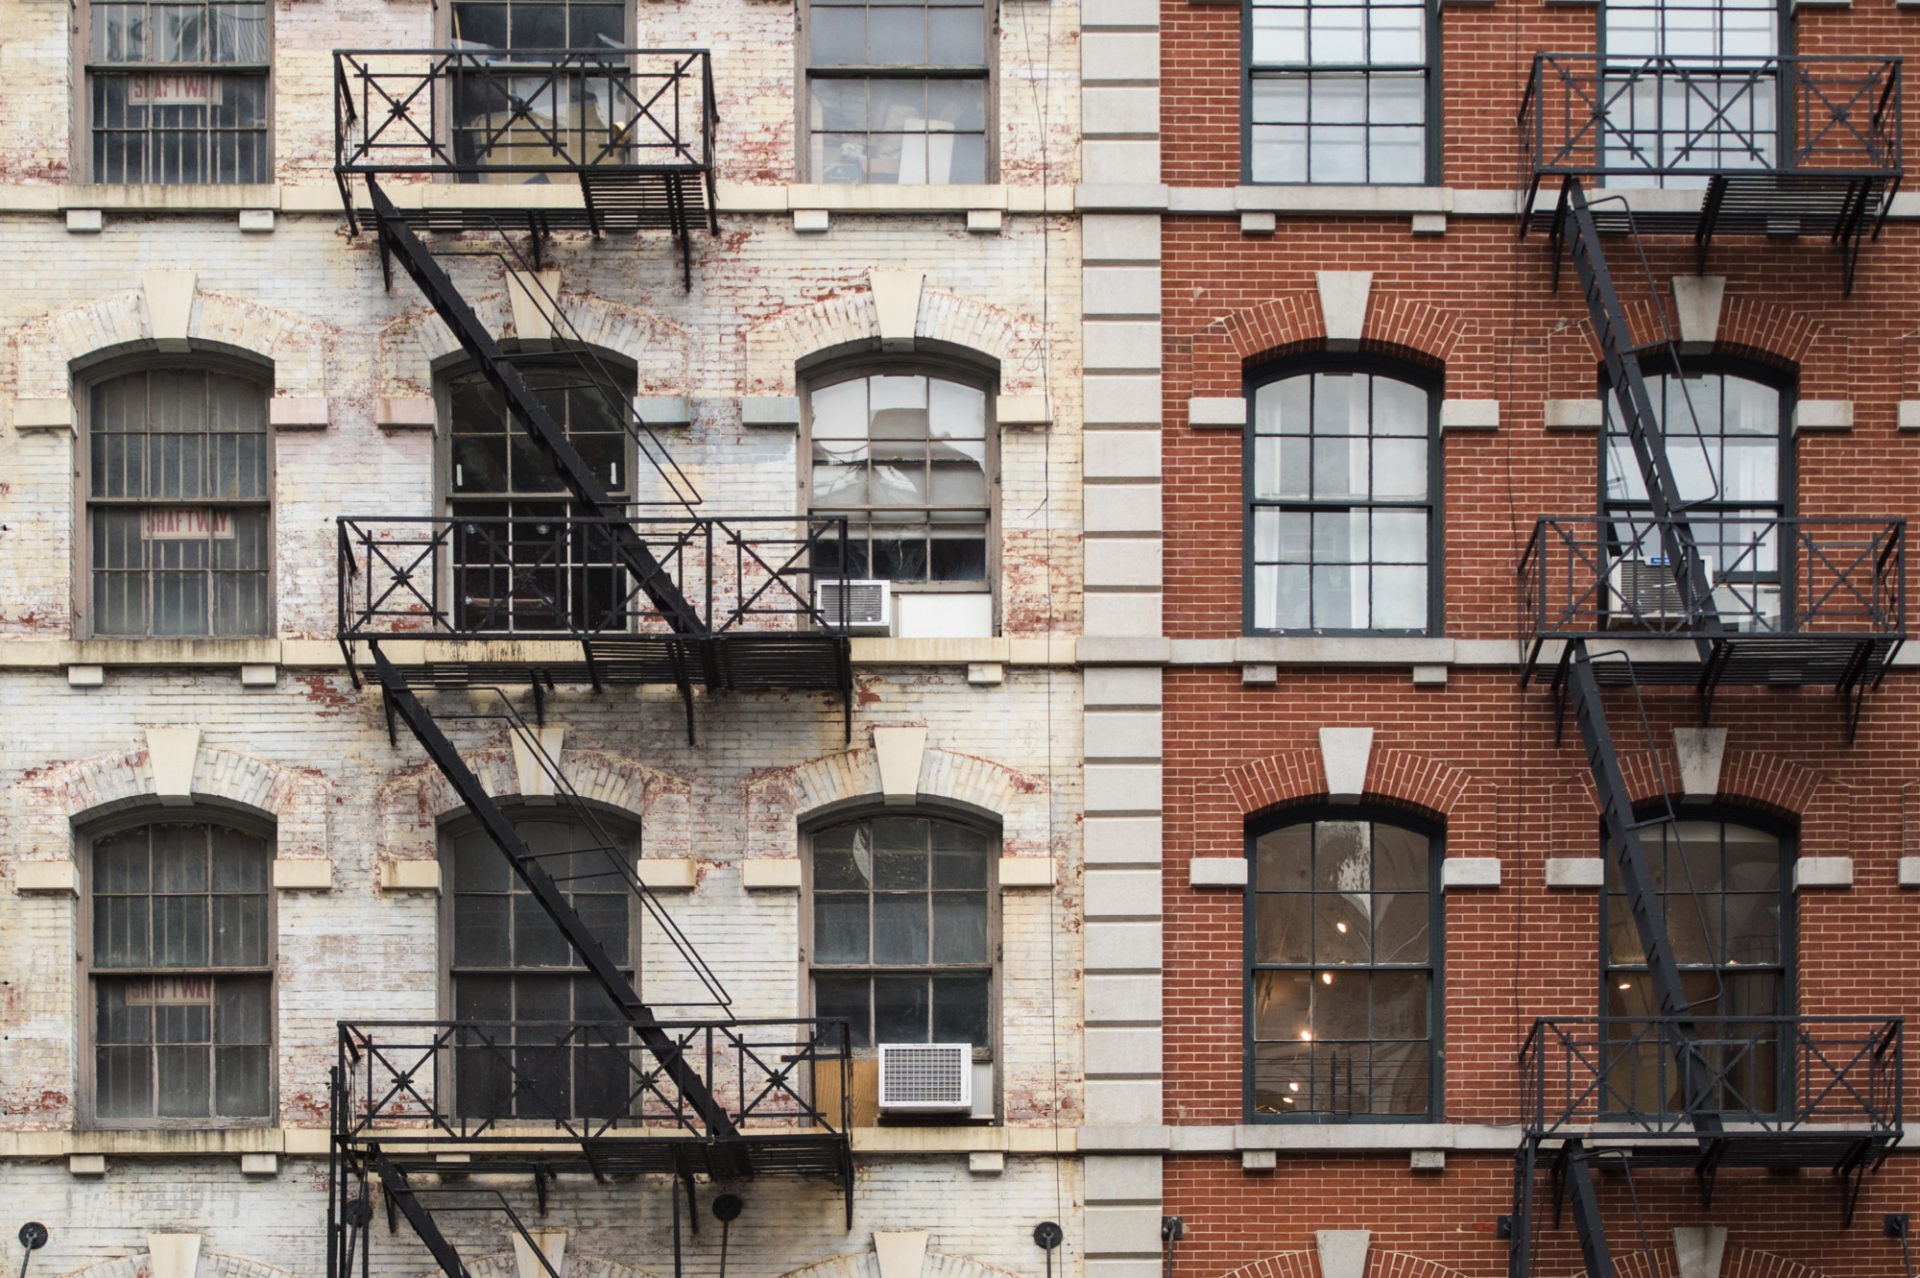 Rent-Stabilized vs. Controlled Apartments in New York